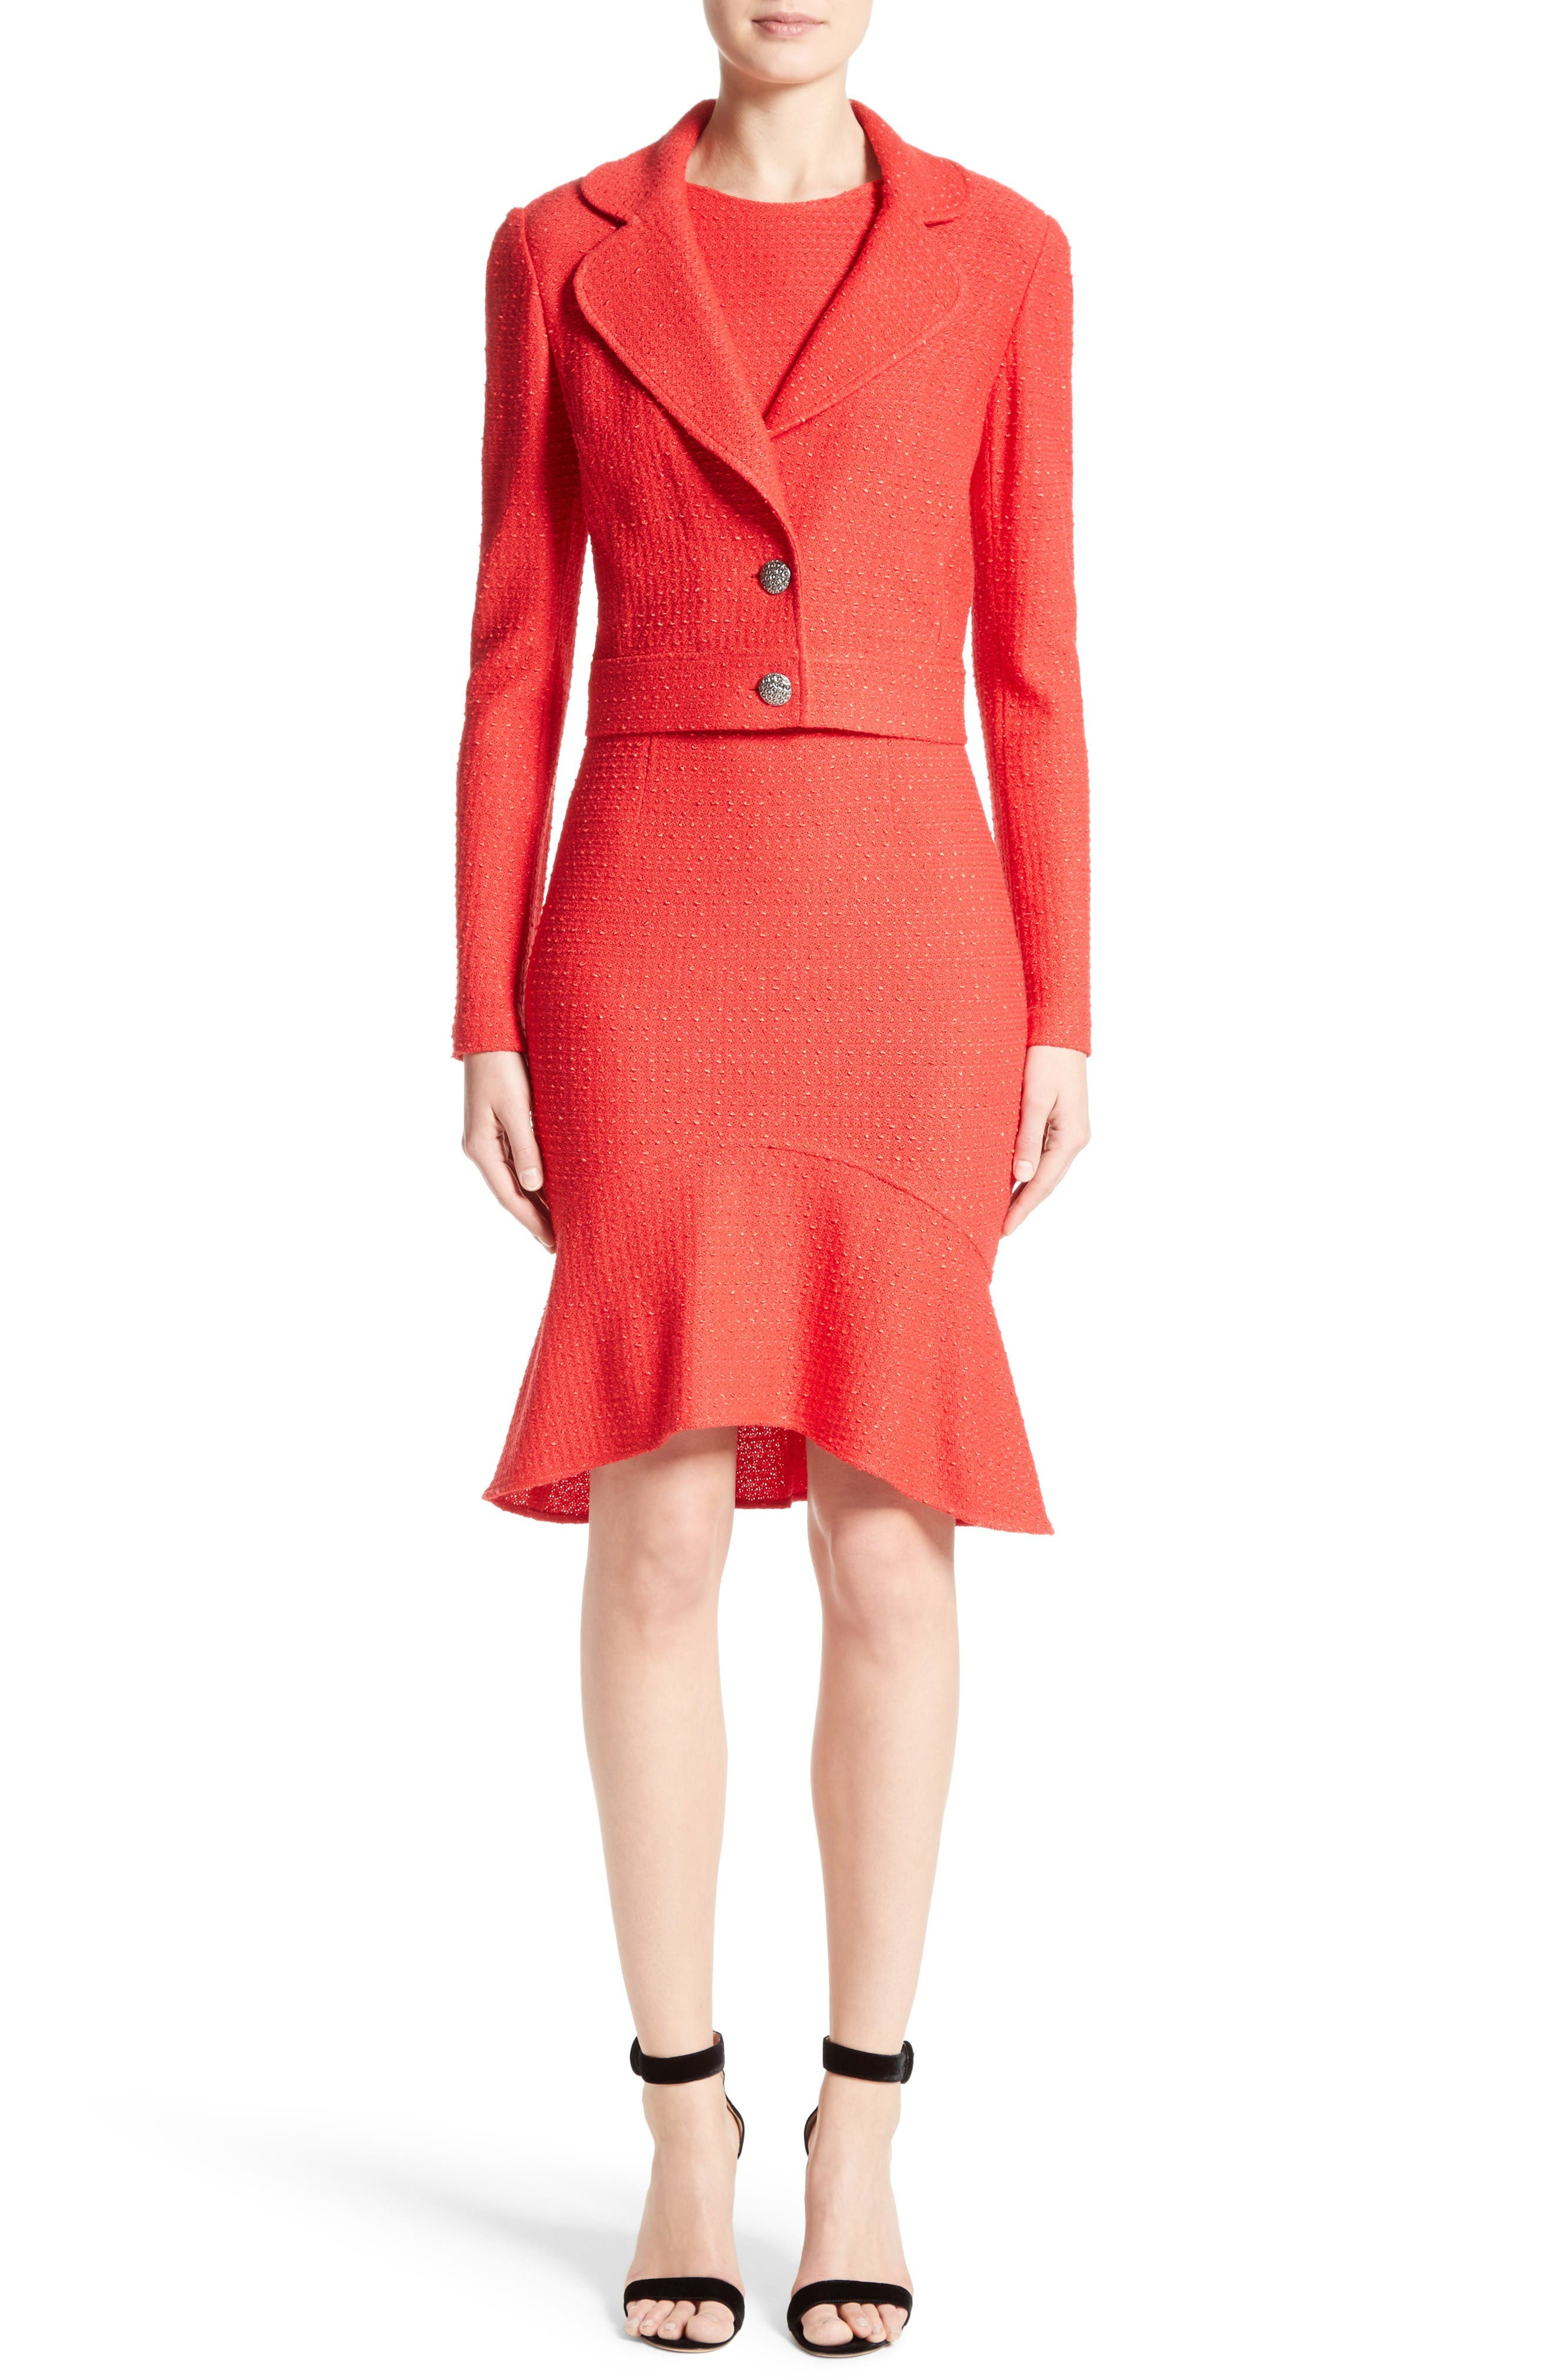 St. John Collection Jacket & Dress Outfit with Accessories